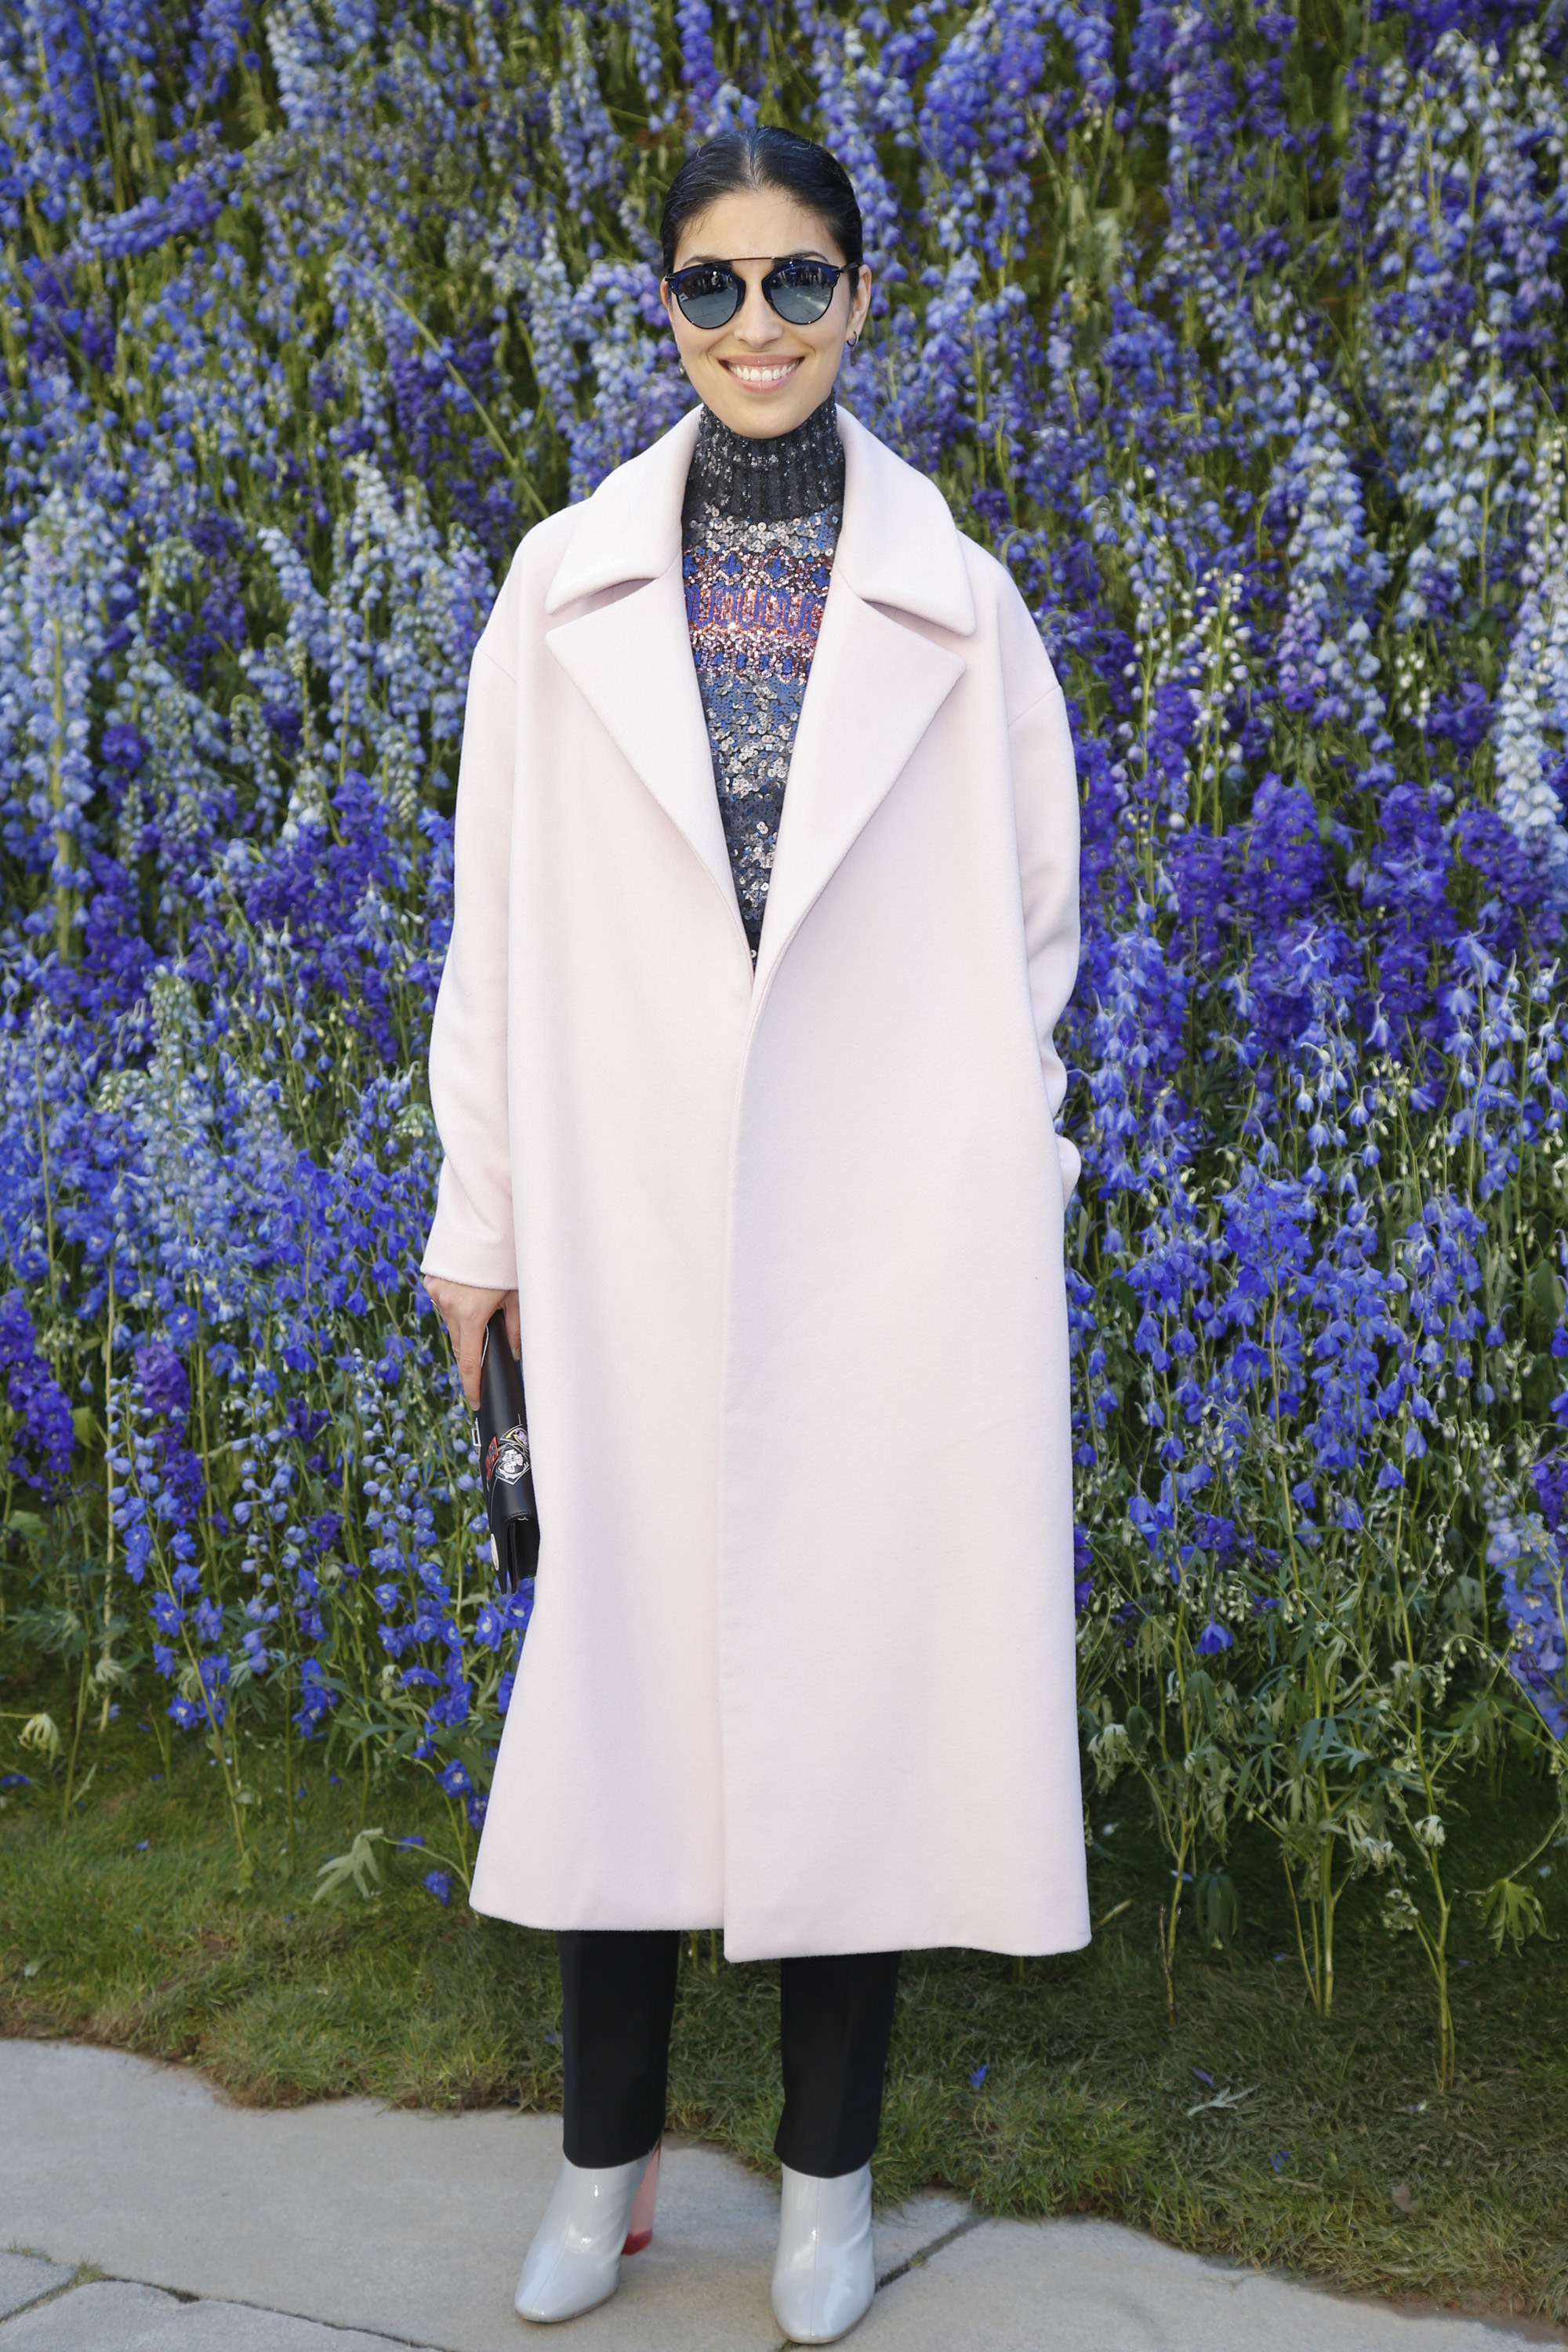 christian-dior-spring-2016-front-row